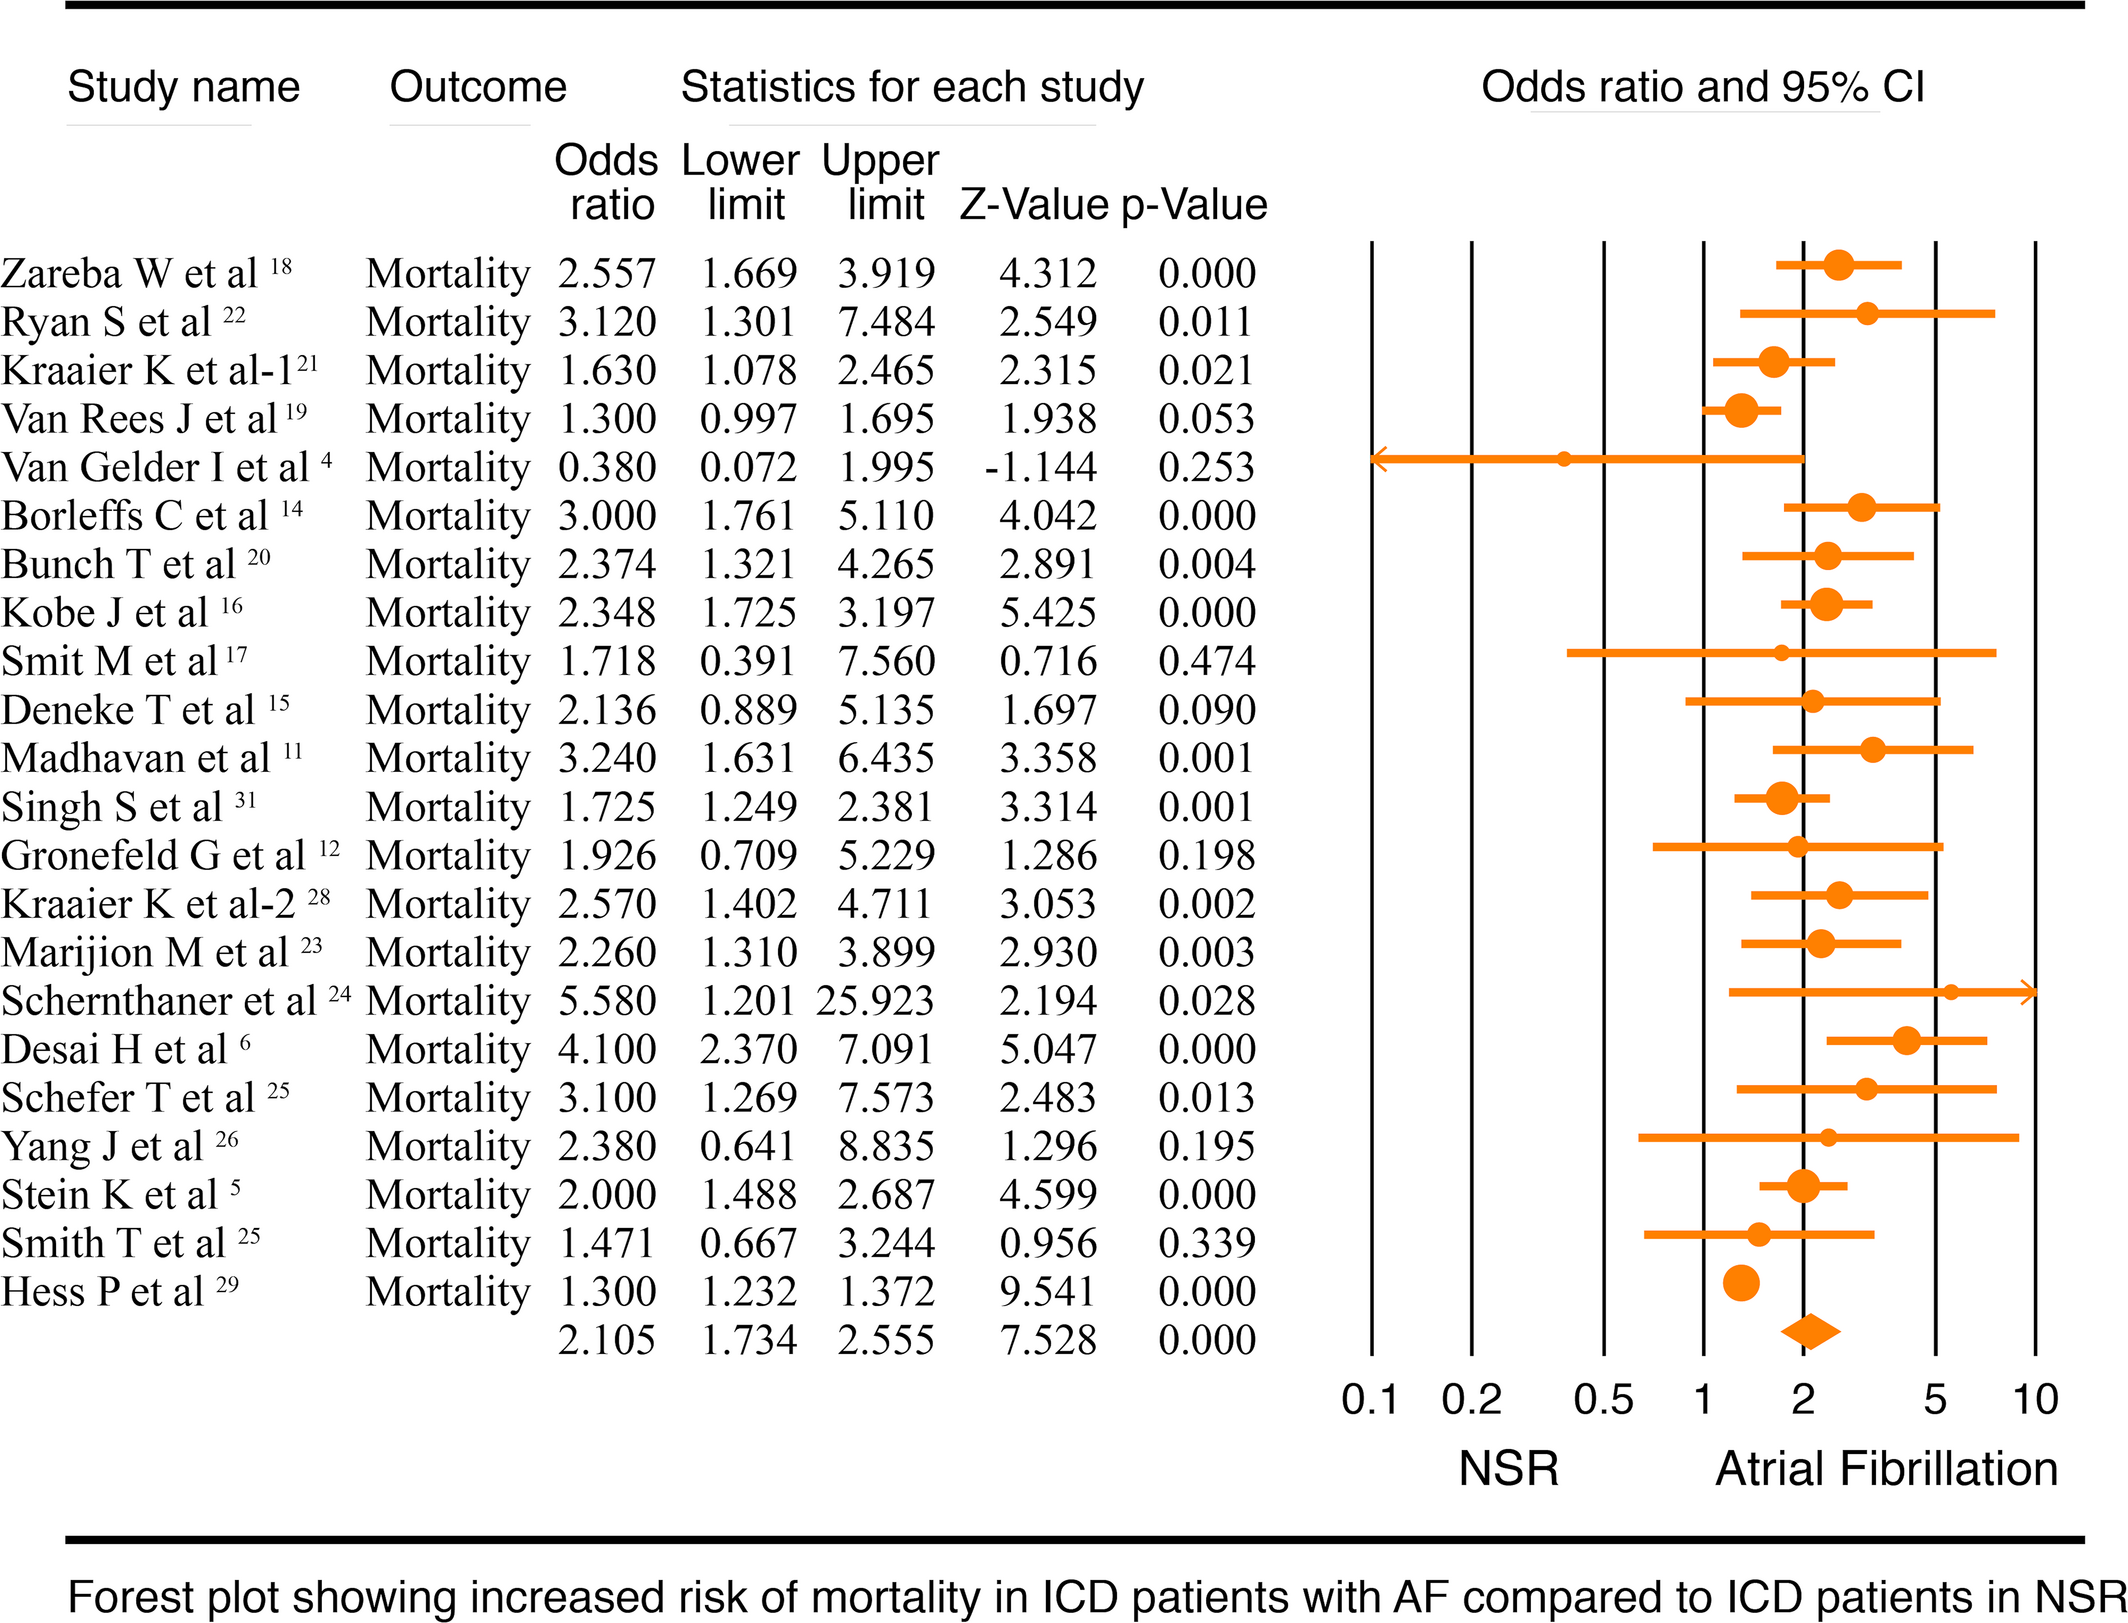 Atrial Fibrillation Is Associated With Higher Overall Mortality in